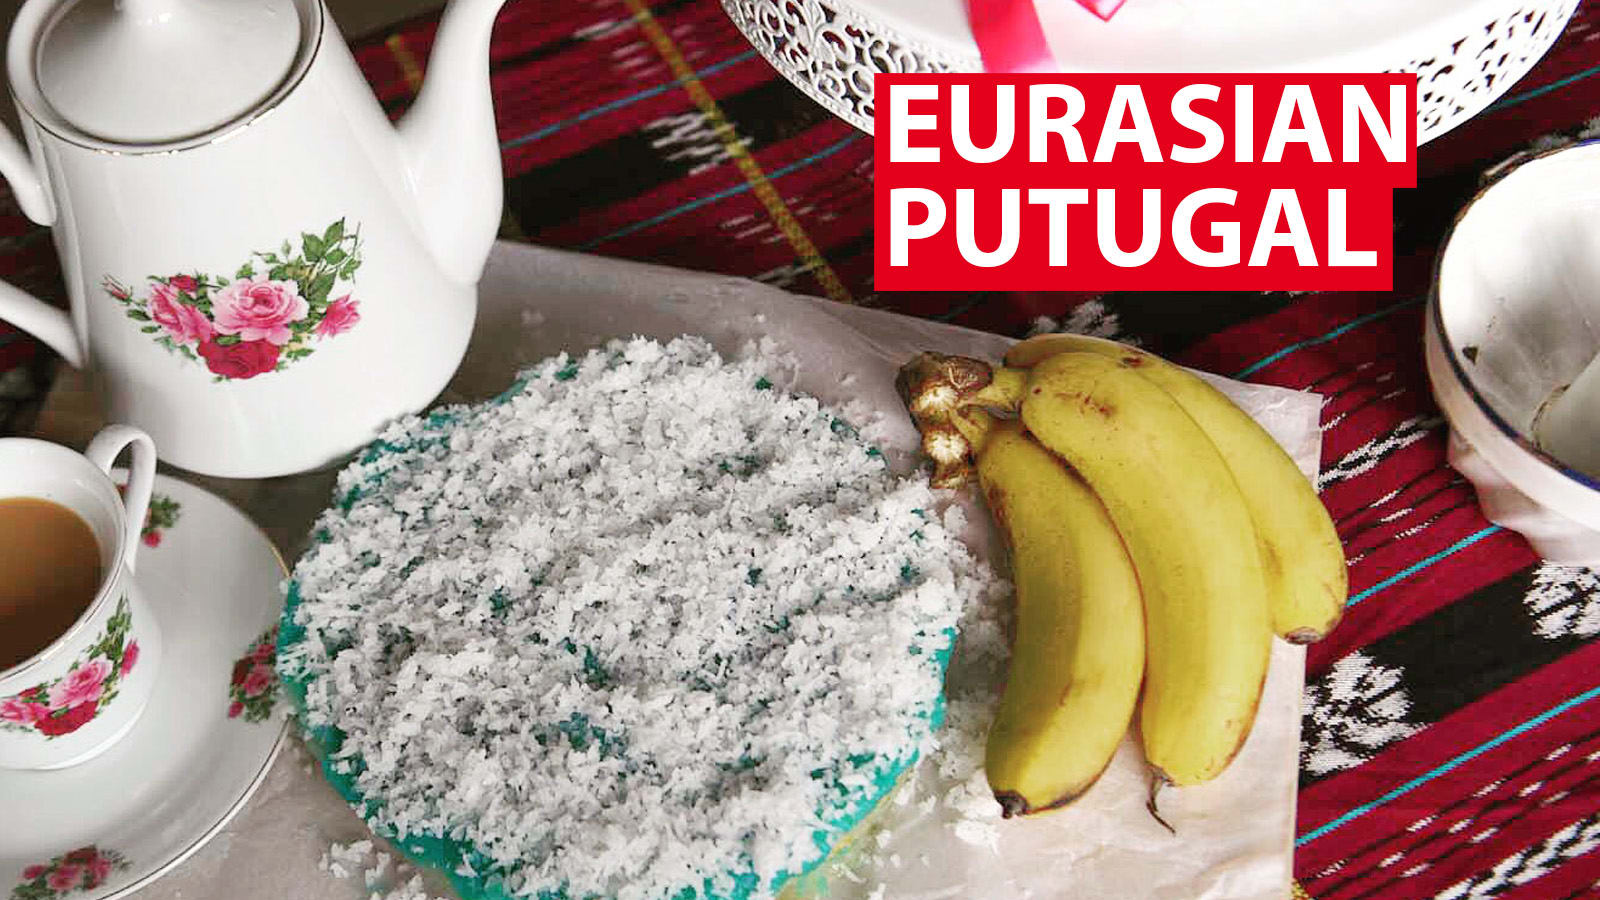 Eurasian Putugal: The recipe